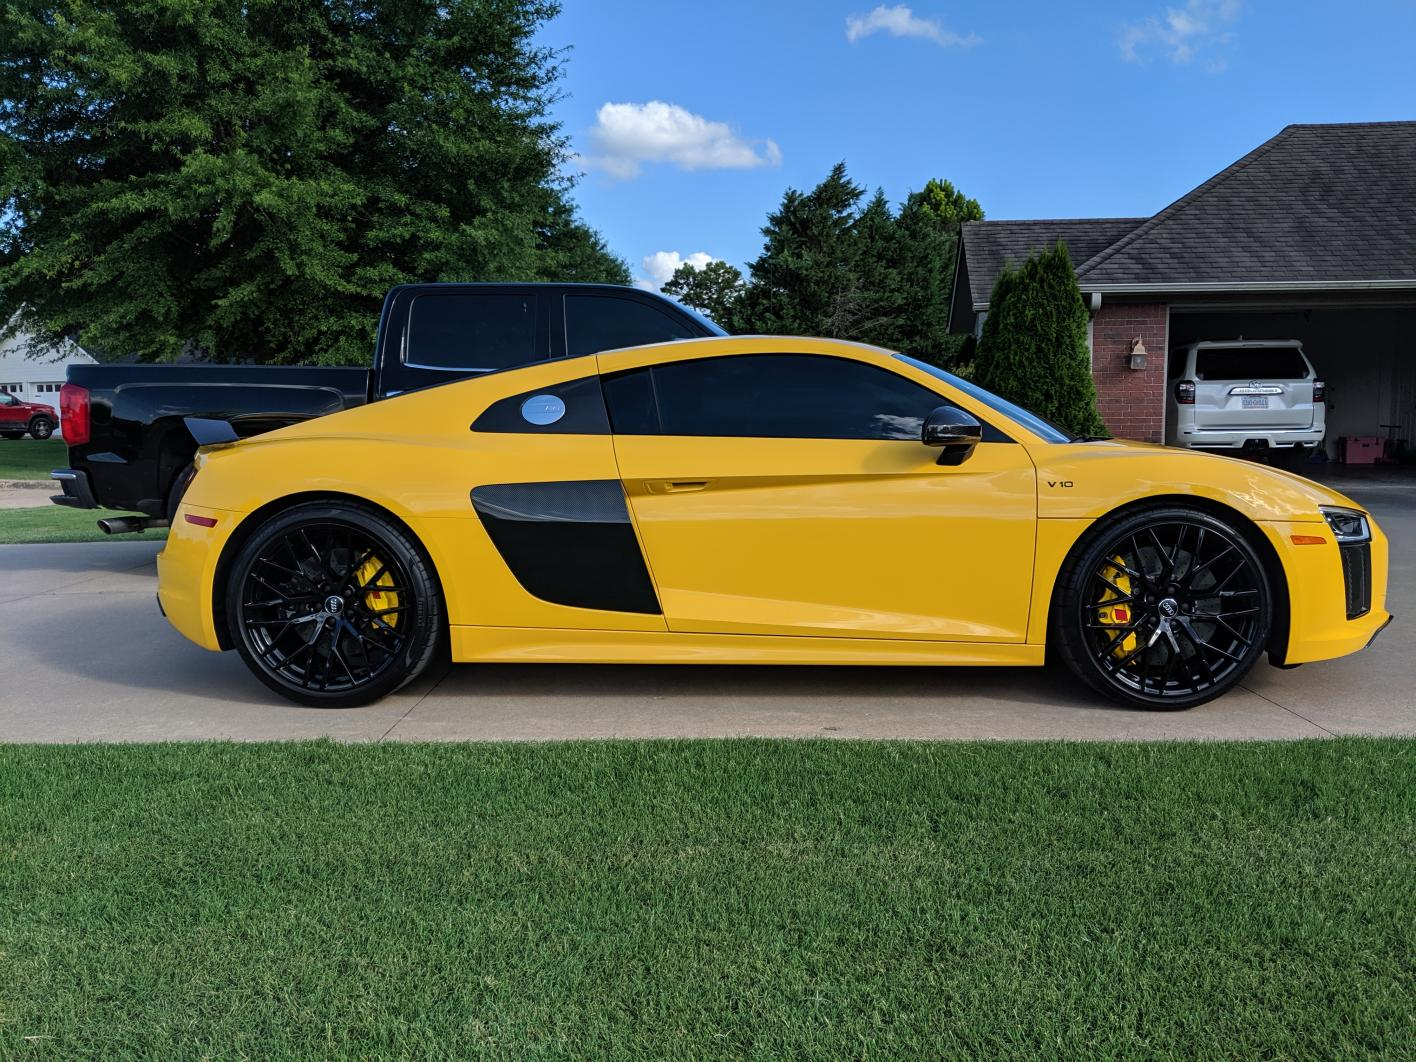 Calipers wrapped in reflective yellow wrap!-img_20190703_175702.jpg